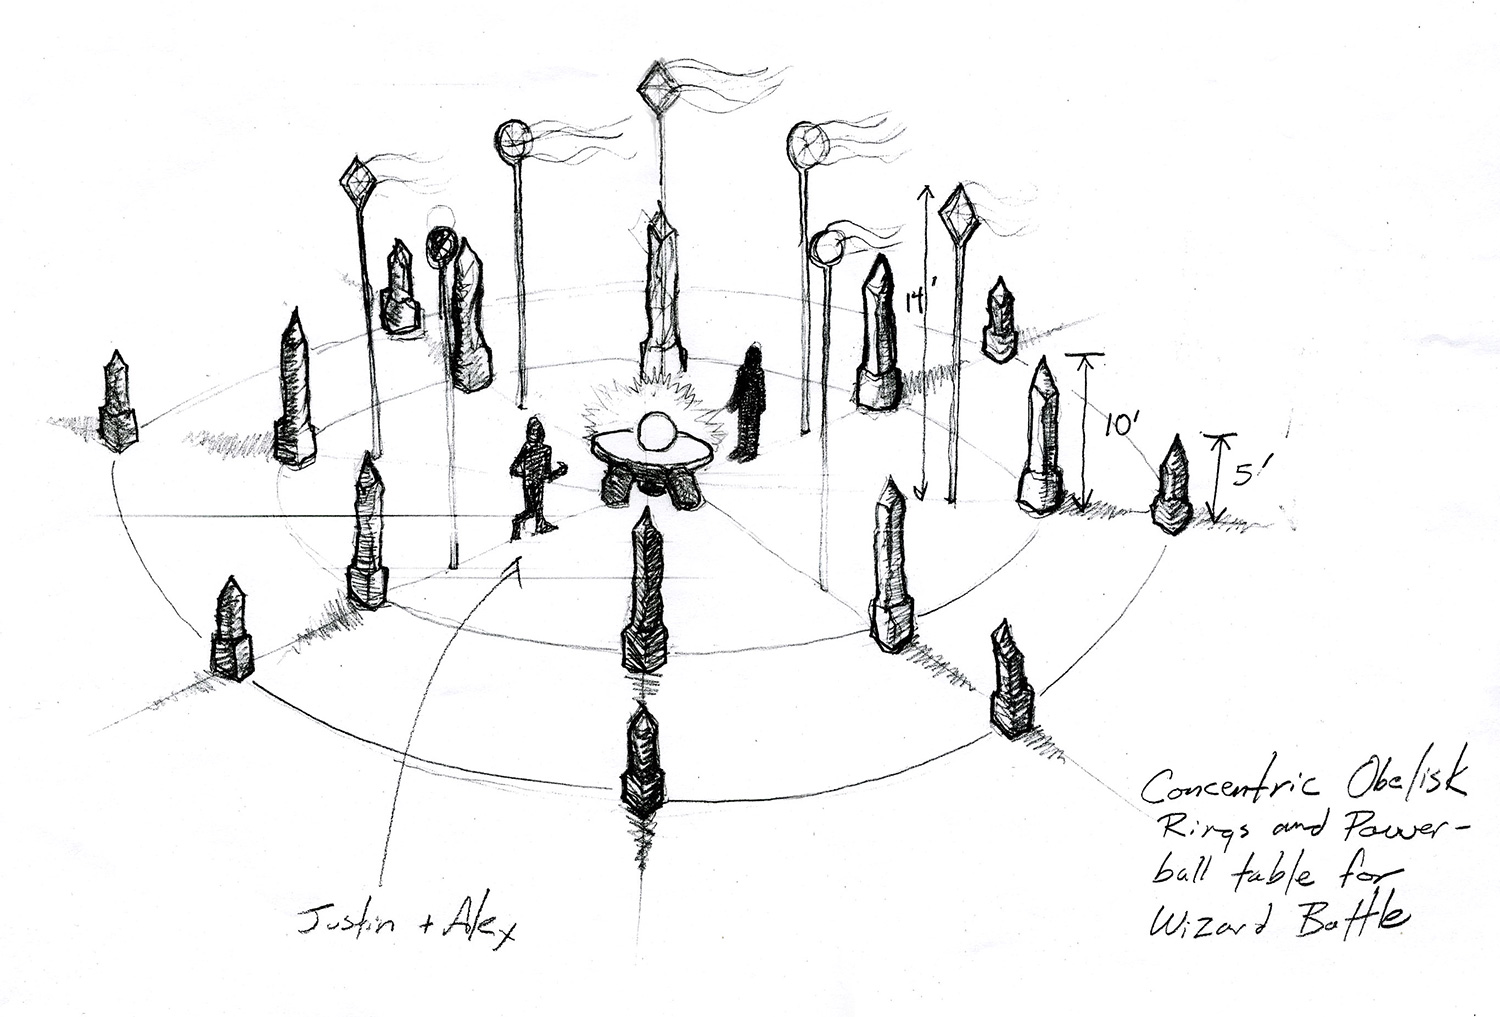 """A final scene in the """"Wizards of Waverly Place: The Movie"""" (2009) called for a wizard battle on a wide open field on the Puerto Rican coast. I came up with the idea of druid-like concentric rings of obelisks surrounding a stone table which held the sought-after object. Here is an early conceptual drawing."""